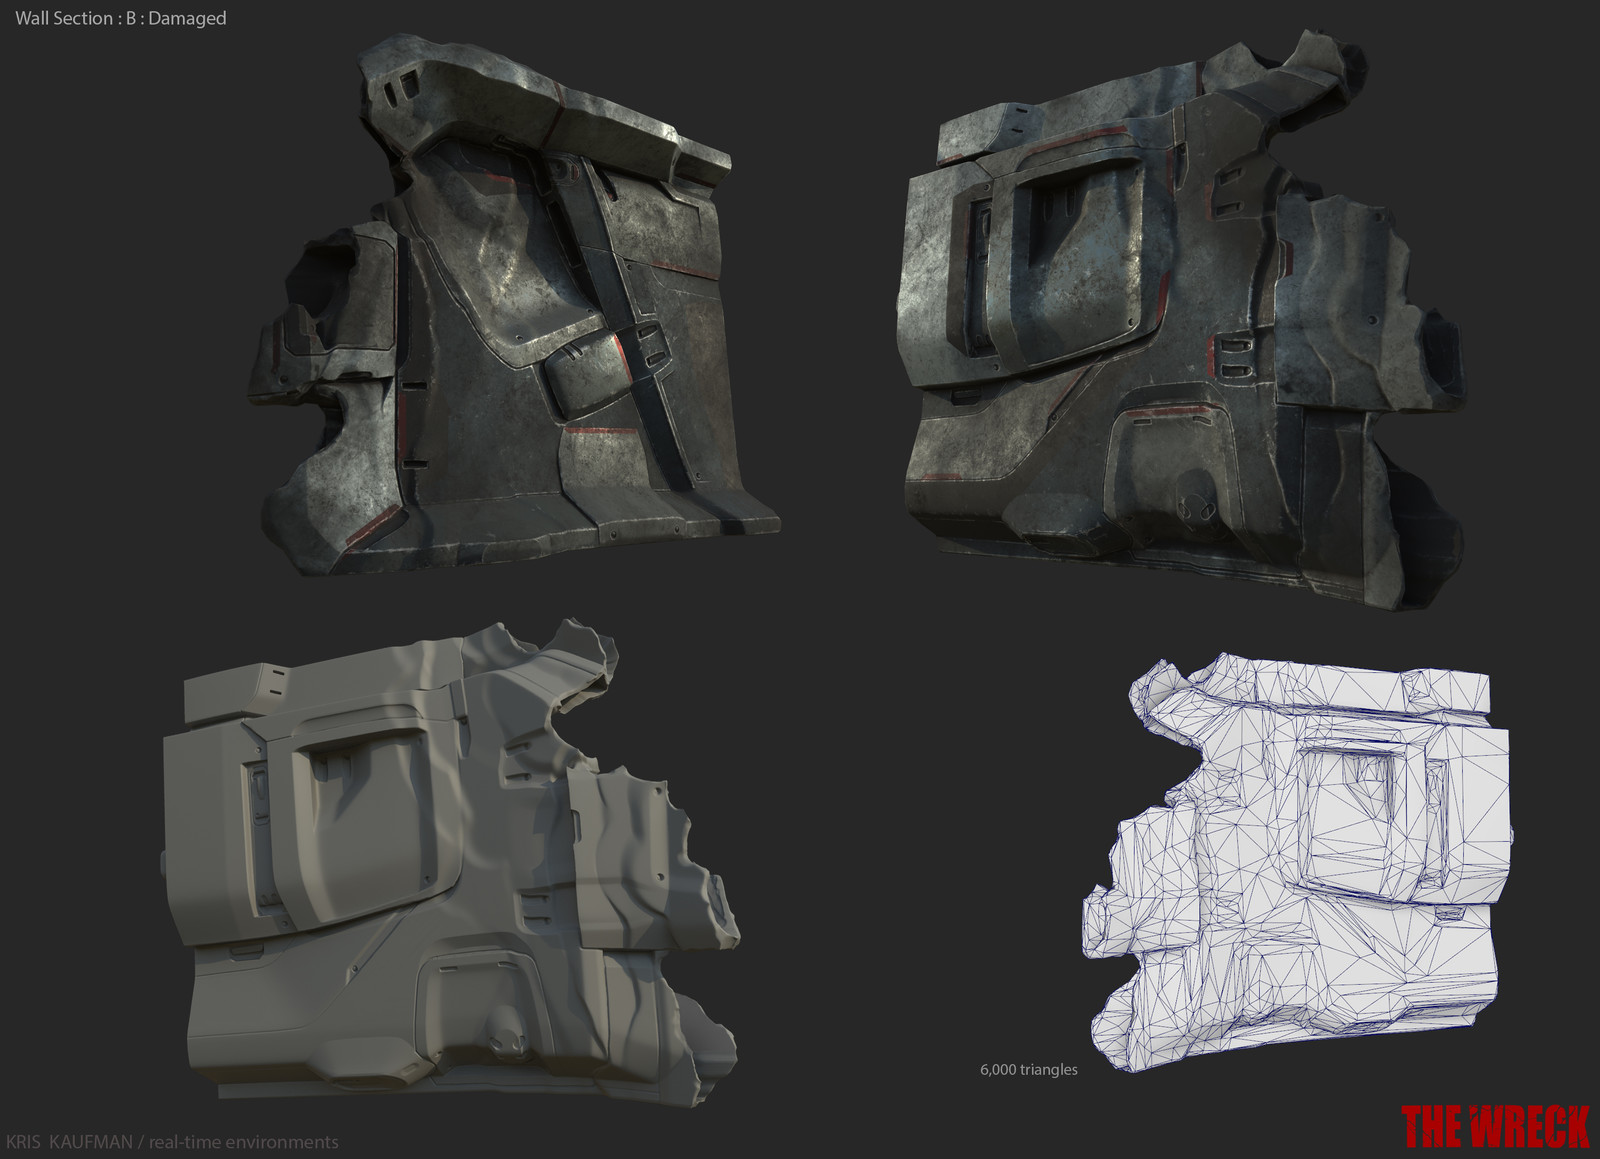 Zbrush model, Substance Painter textures, and in game asset poly count